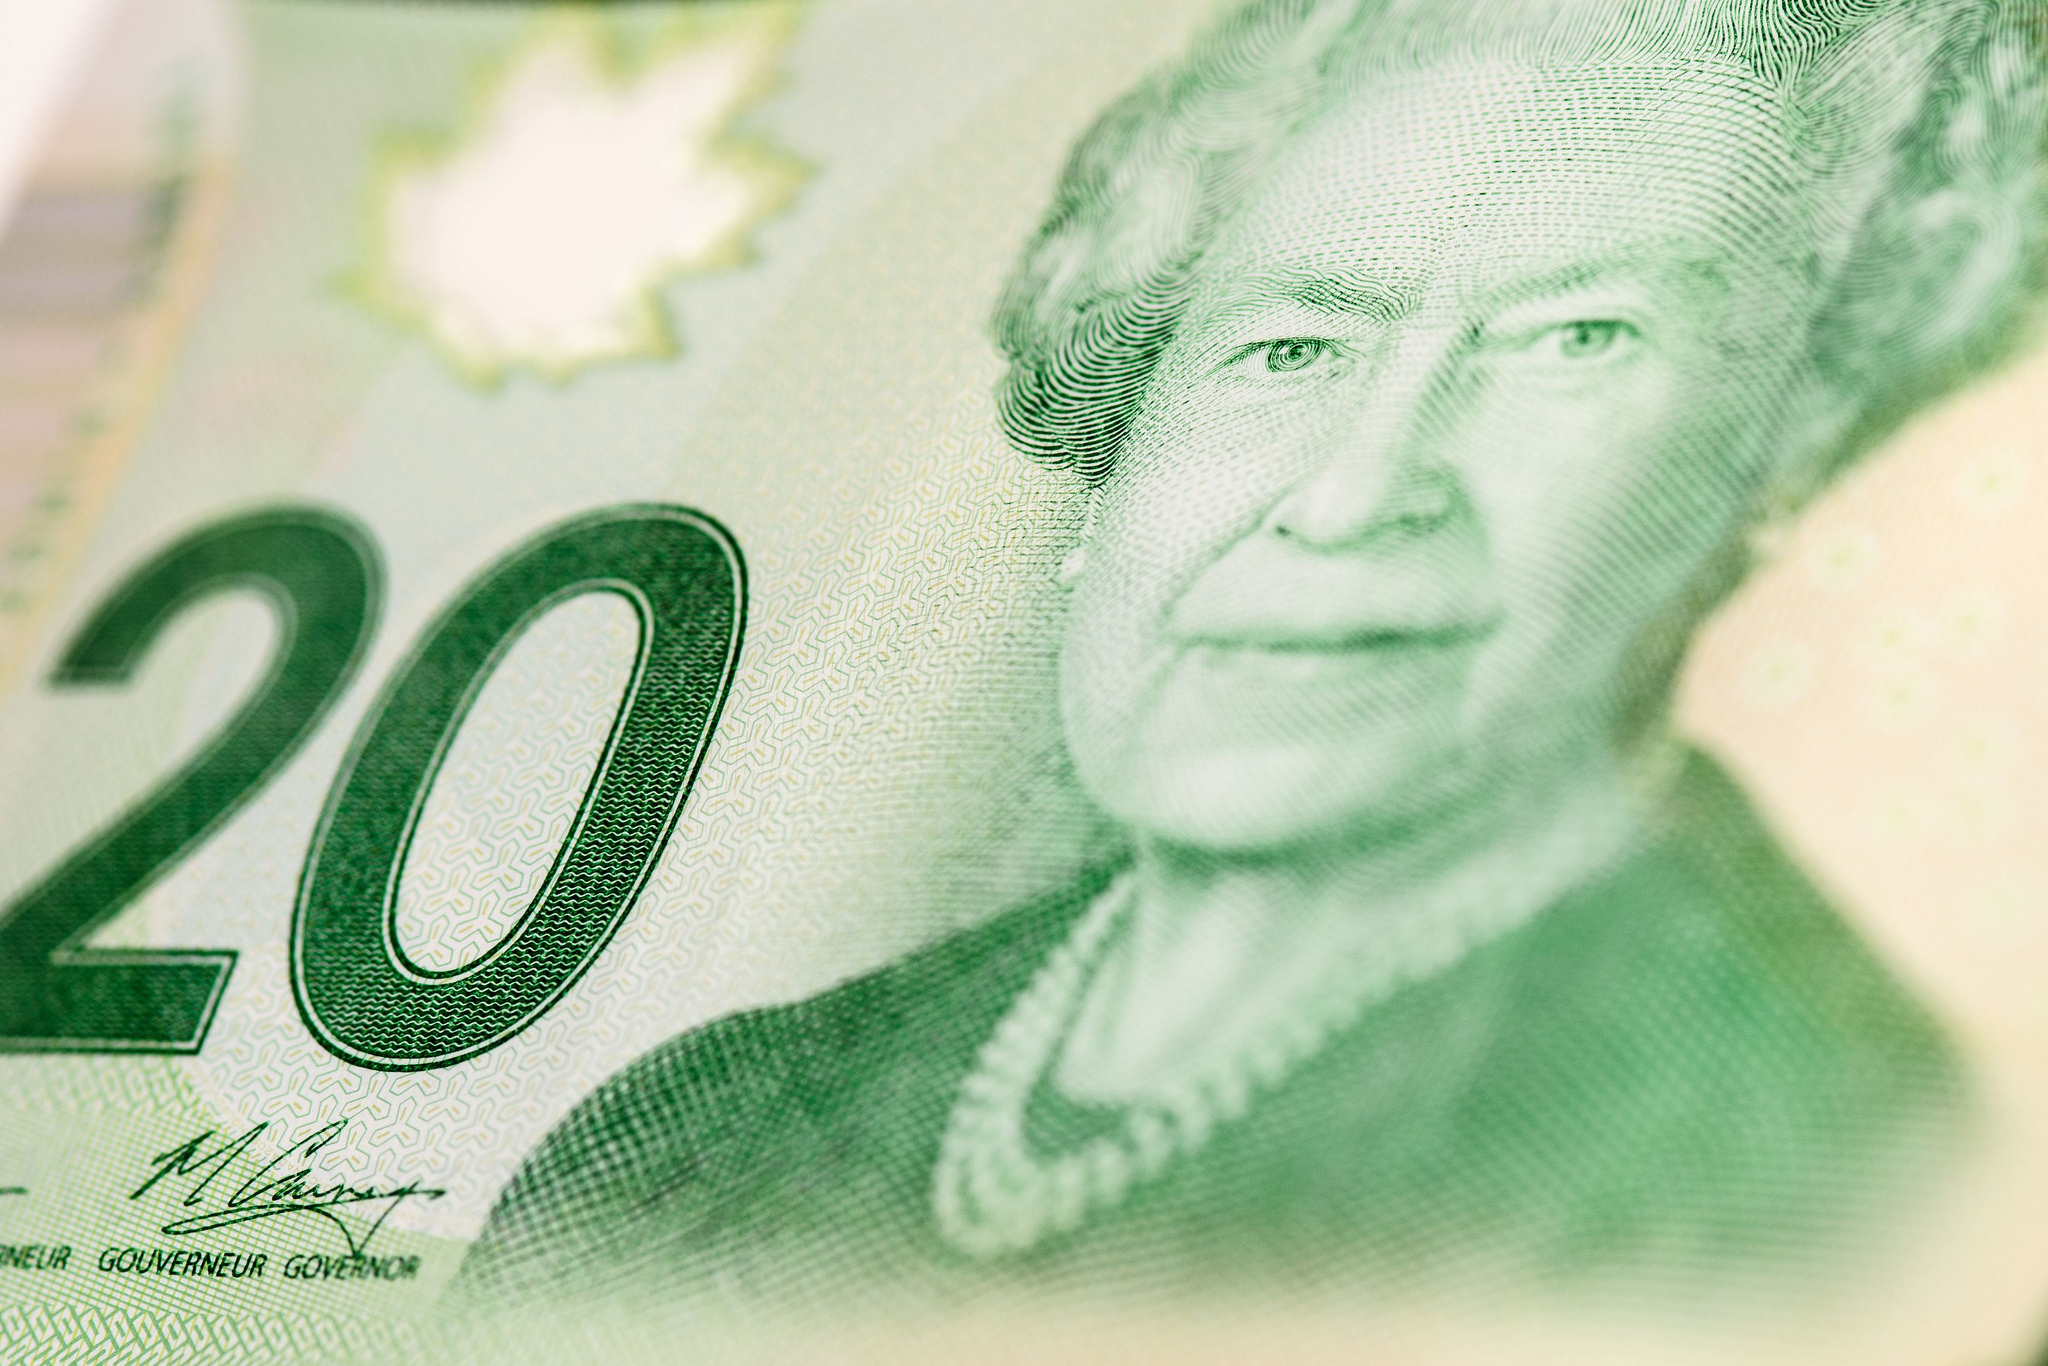 Photo of $20 Canadian currency and Queen.